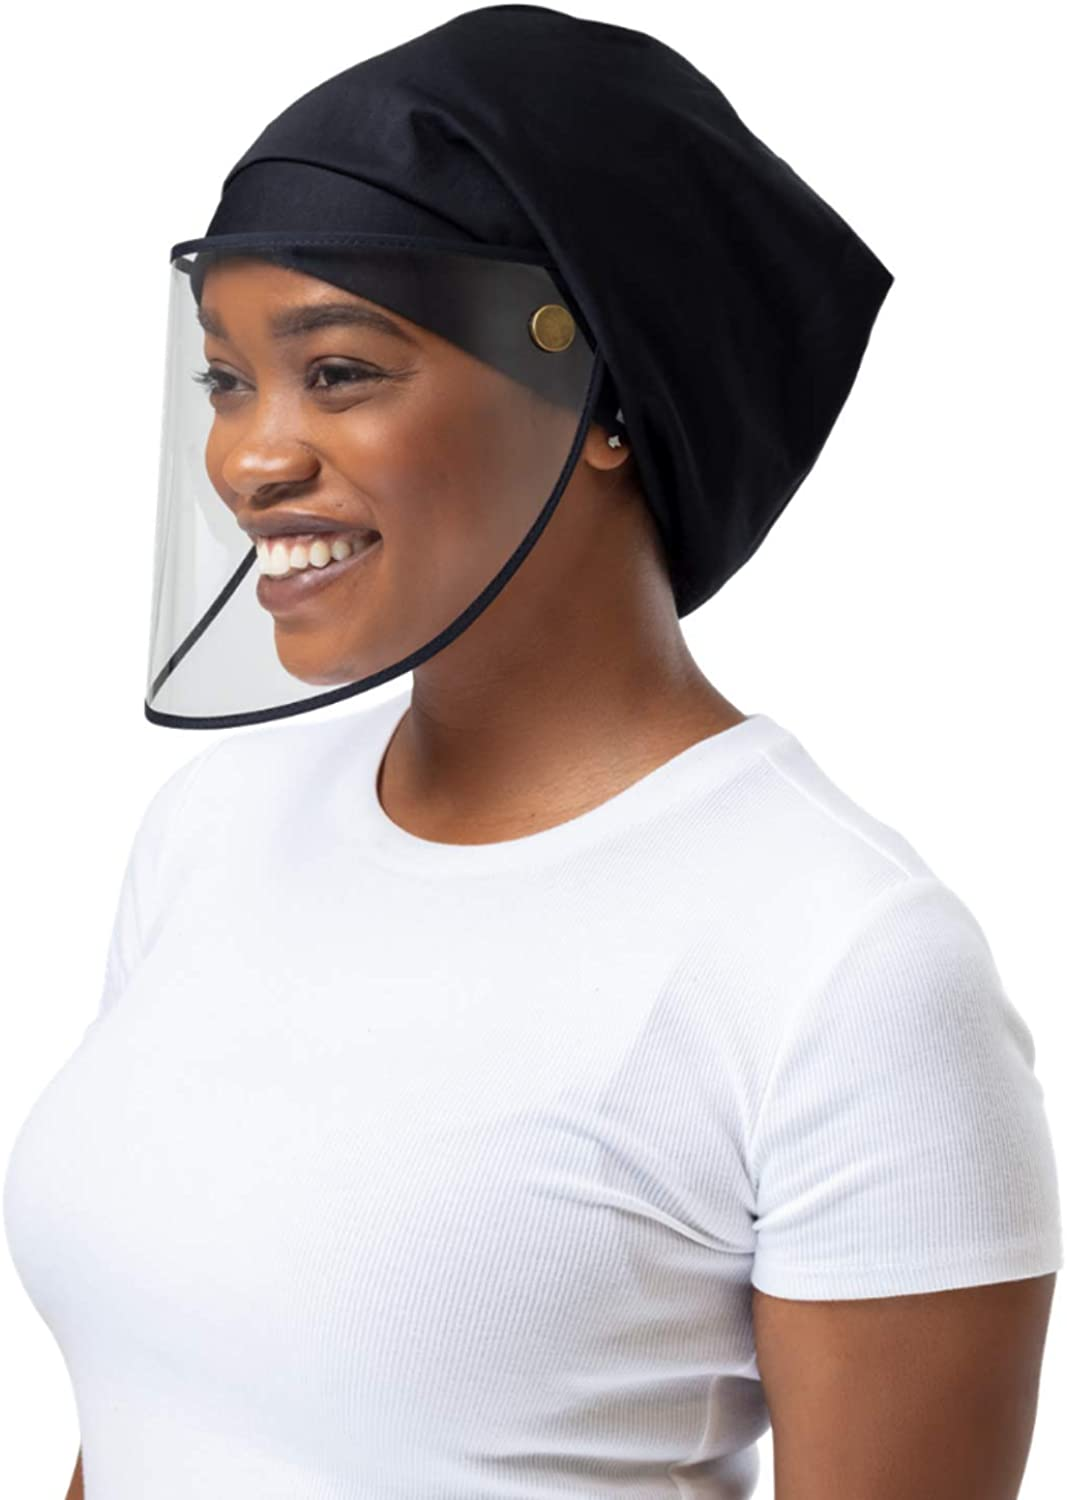 Hairbrella Pro Face Shield Women's Rain Hat, Waterproof, Sun Protection, Satin-Lined, Packable at  Women's Clothing store